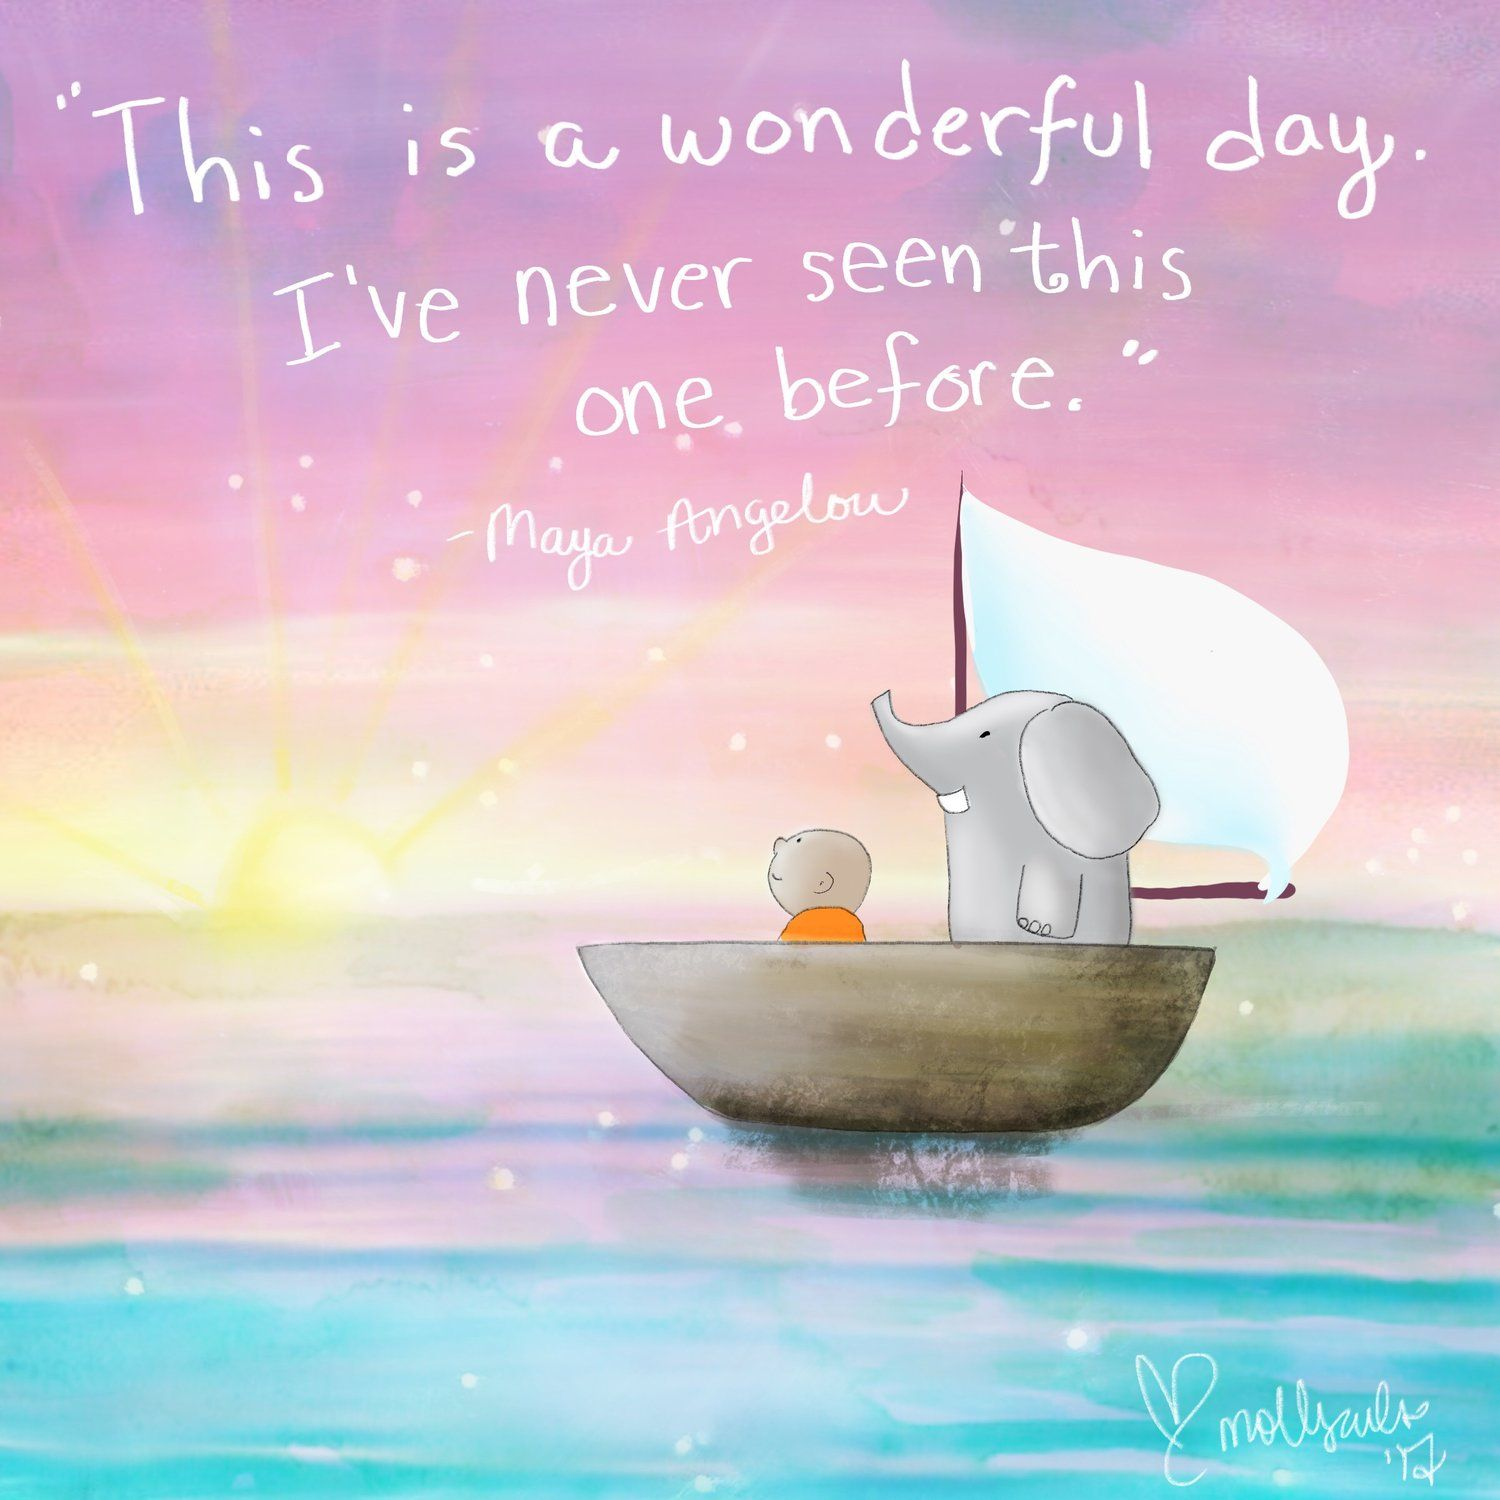 New Day Quotes This Is A Brand New Day  Insightt  Pinterest  Buddha Thoughts .